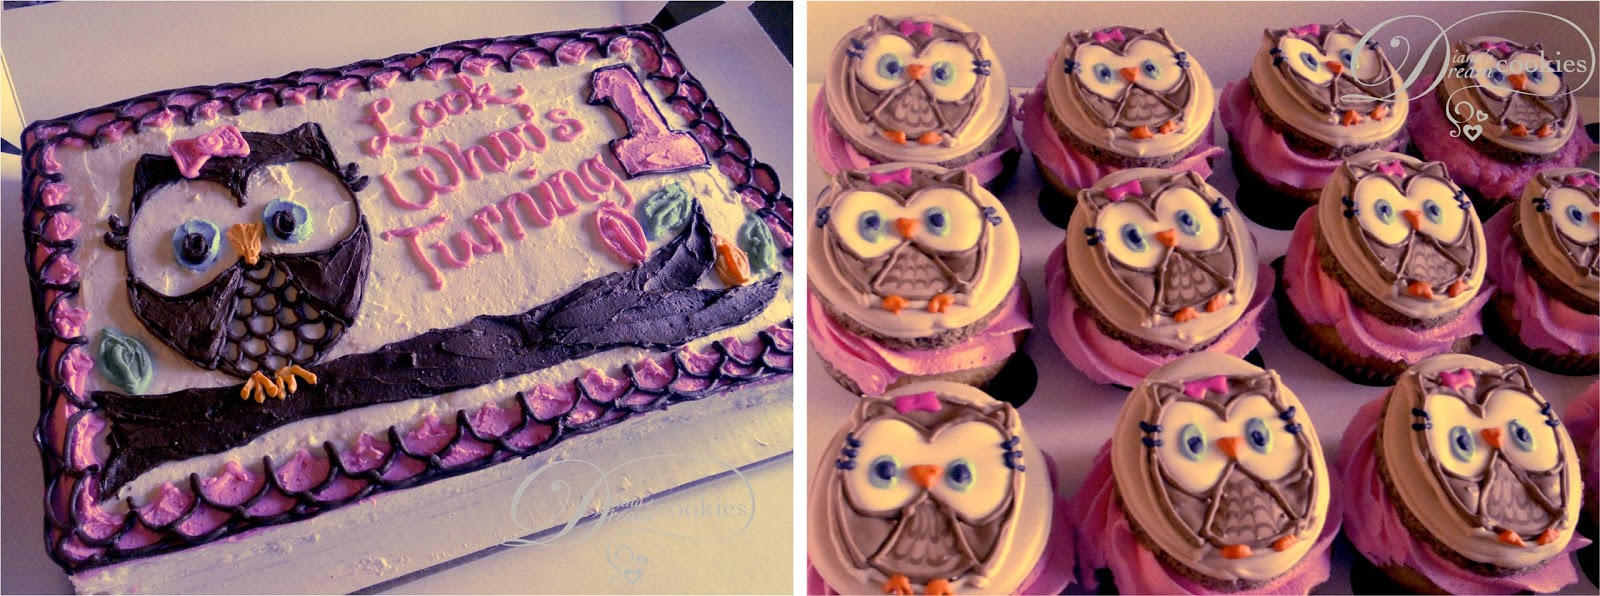 Owl Birthday Cake And Cupcakes With Sugar Cookie Toppers